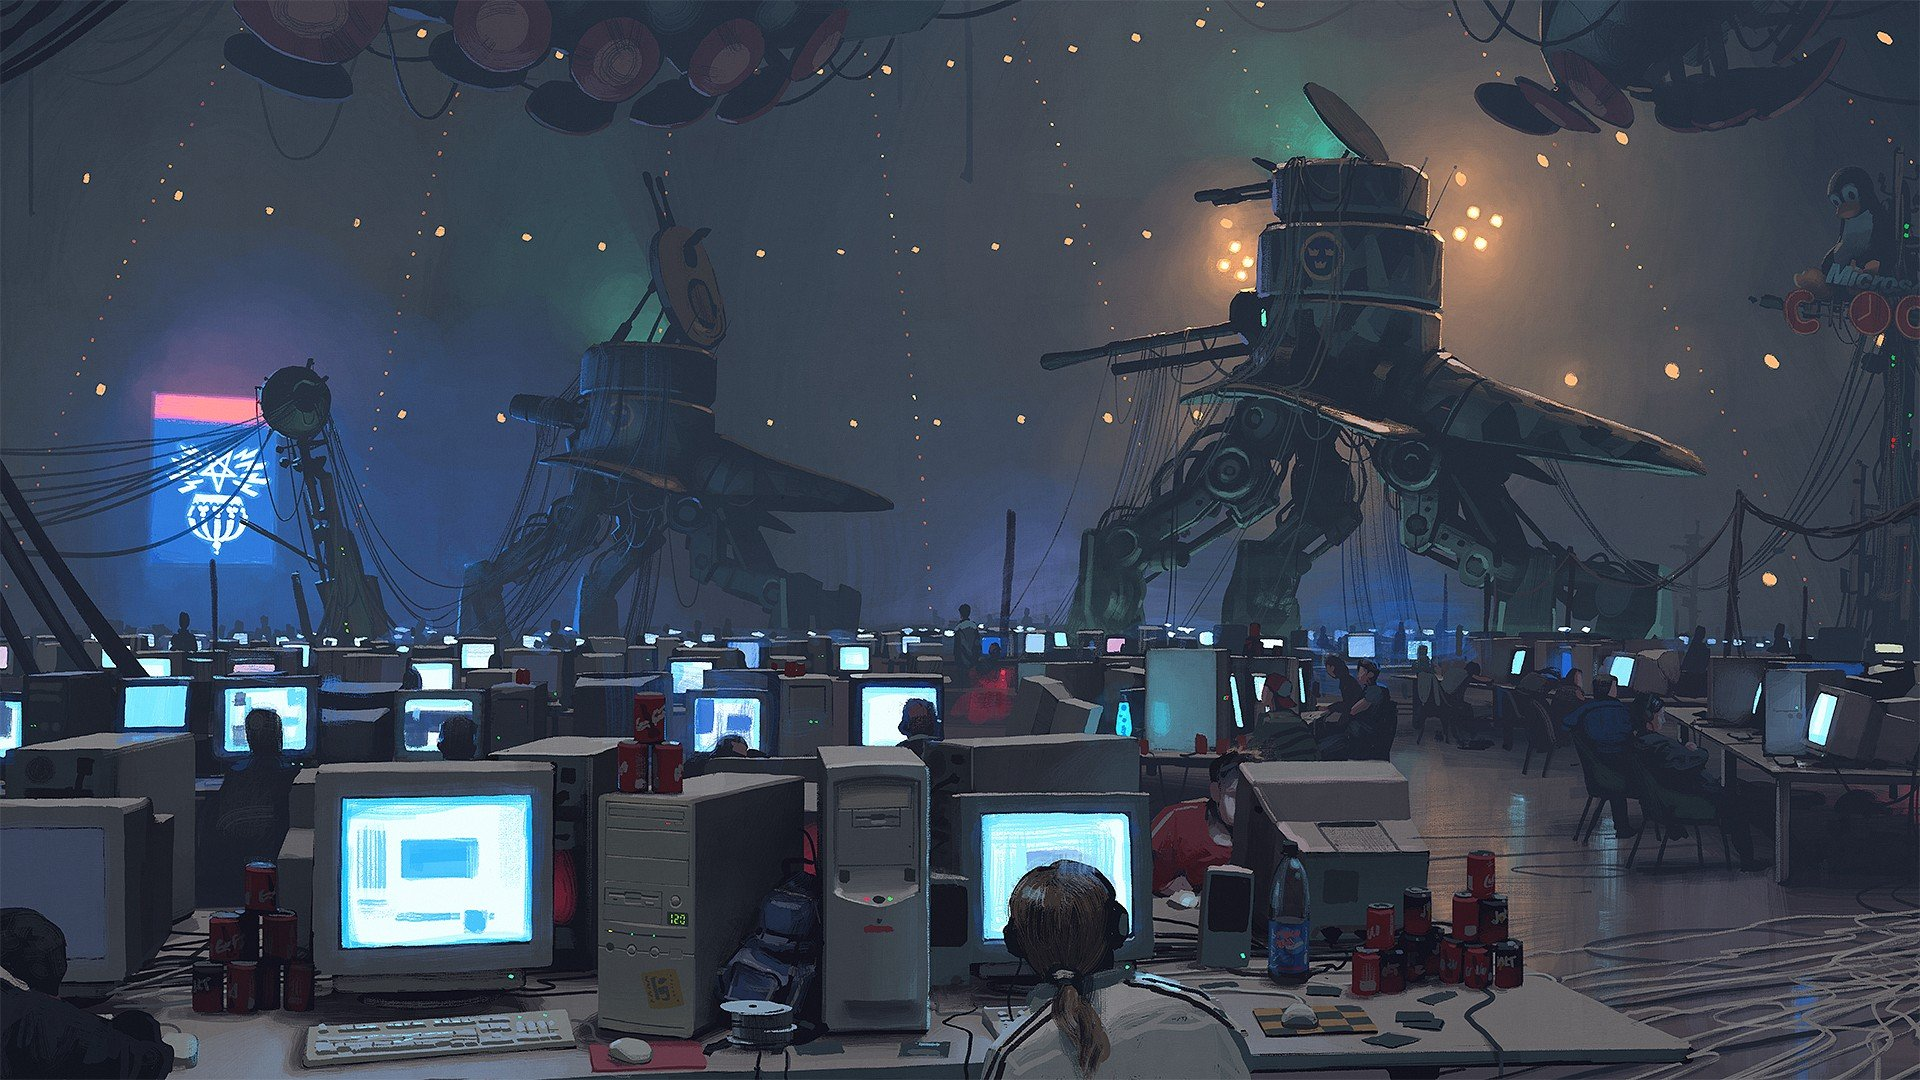 Artwork, Aliens, Computer, Science Fiction HD Wallpapers